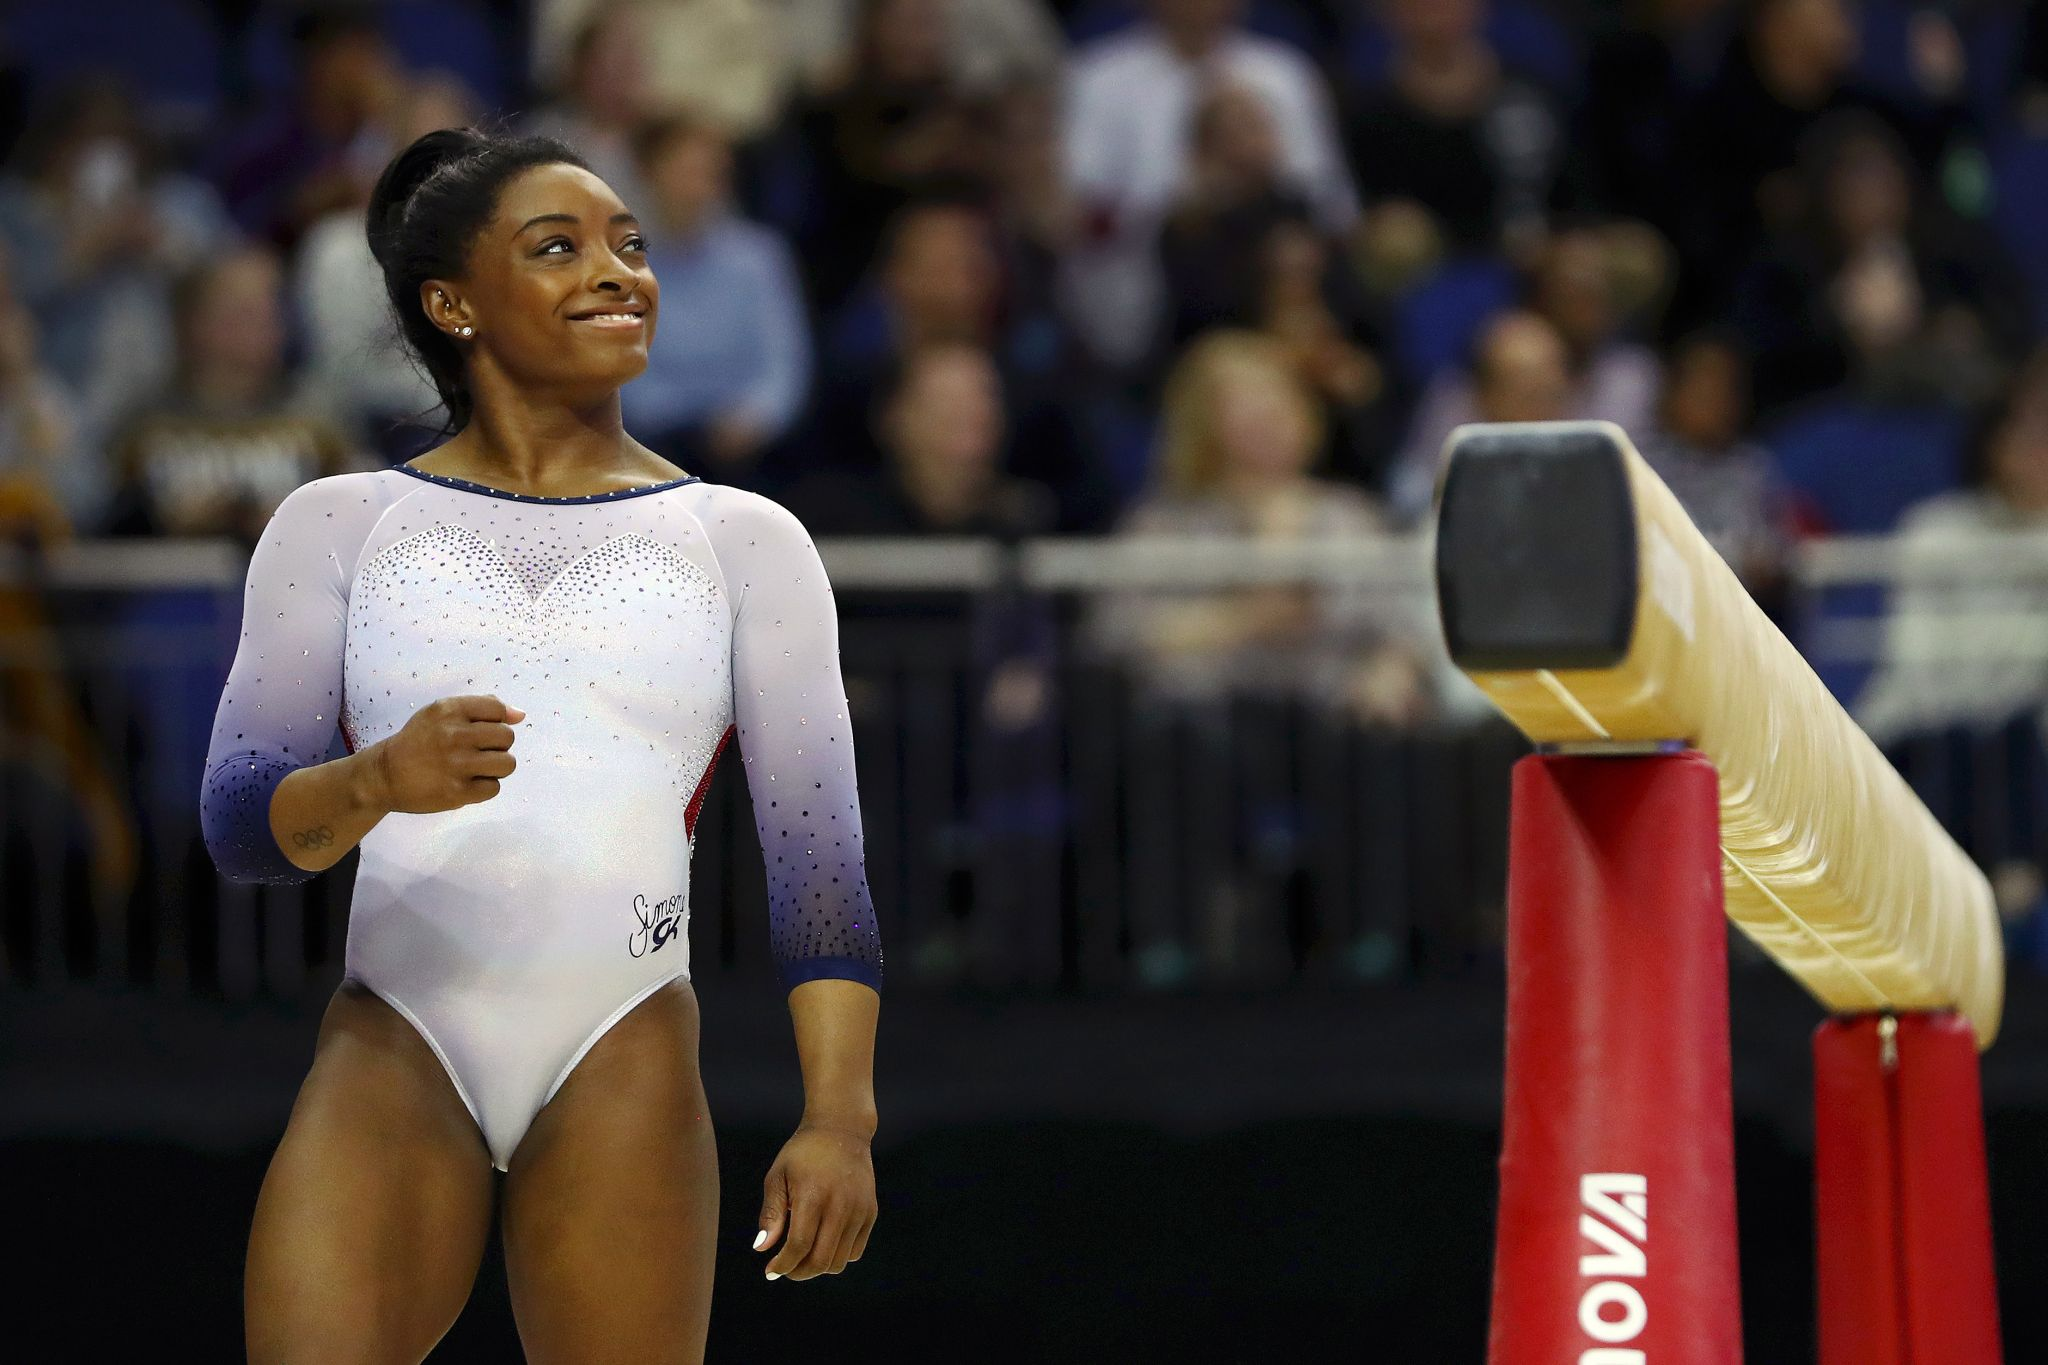 Simone Biles to appear in Sports Illustrated's Swimsuit Issue again